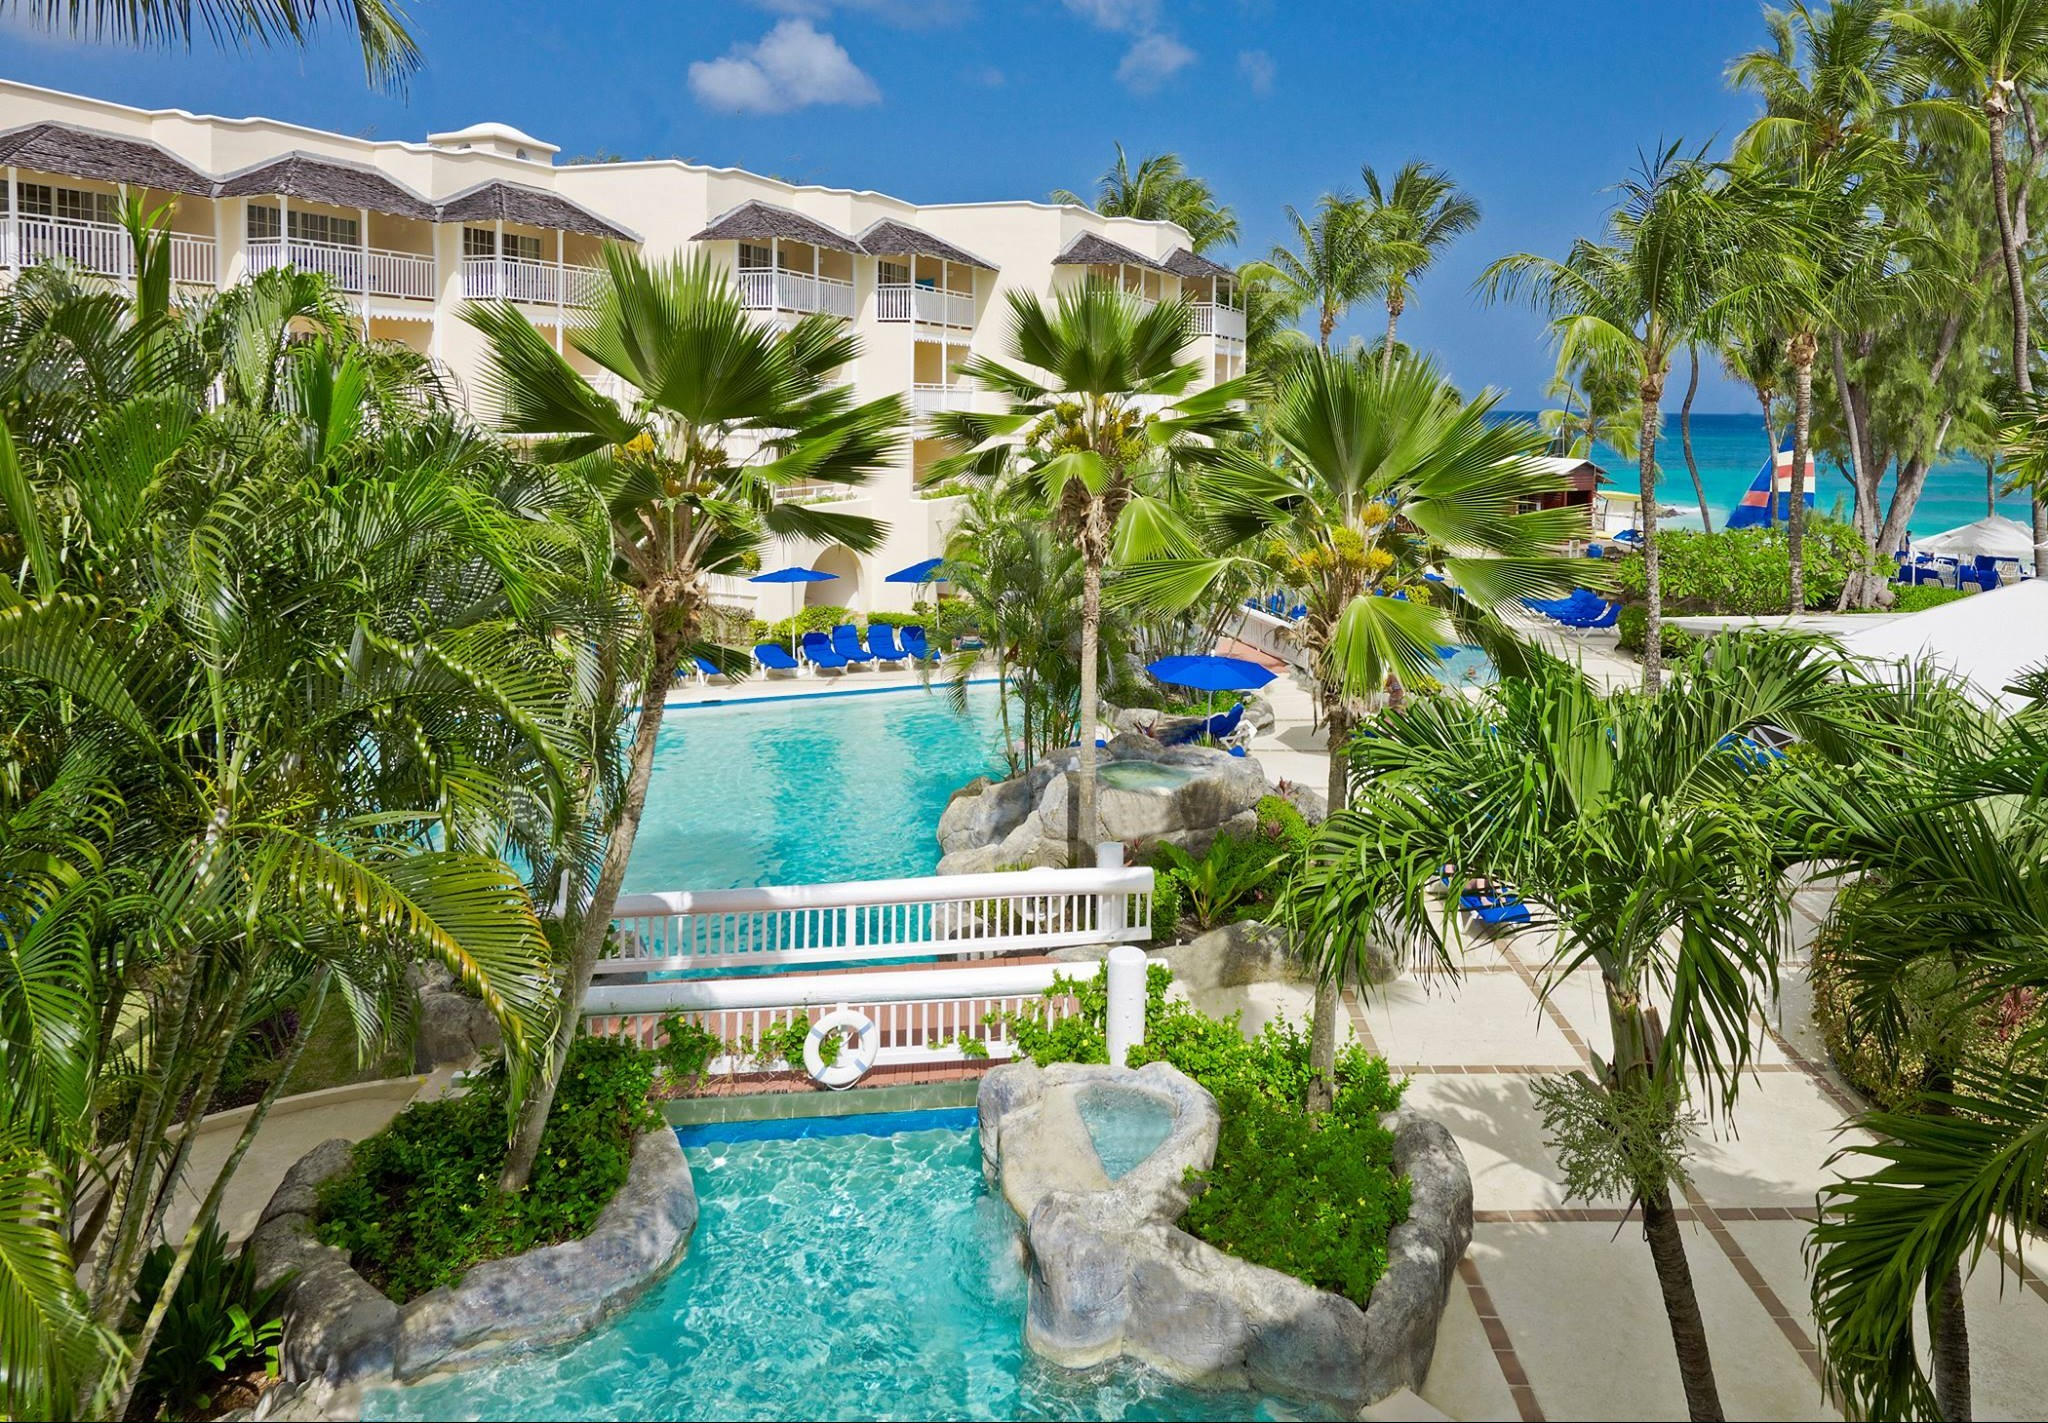 Turtle Beach Resort Barbados Reviews 4 Star All Inclusive